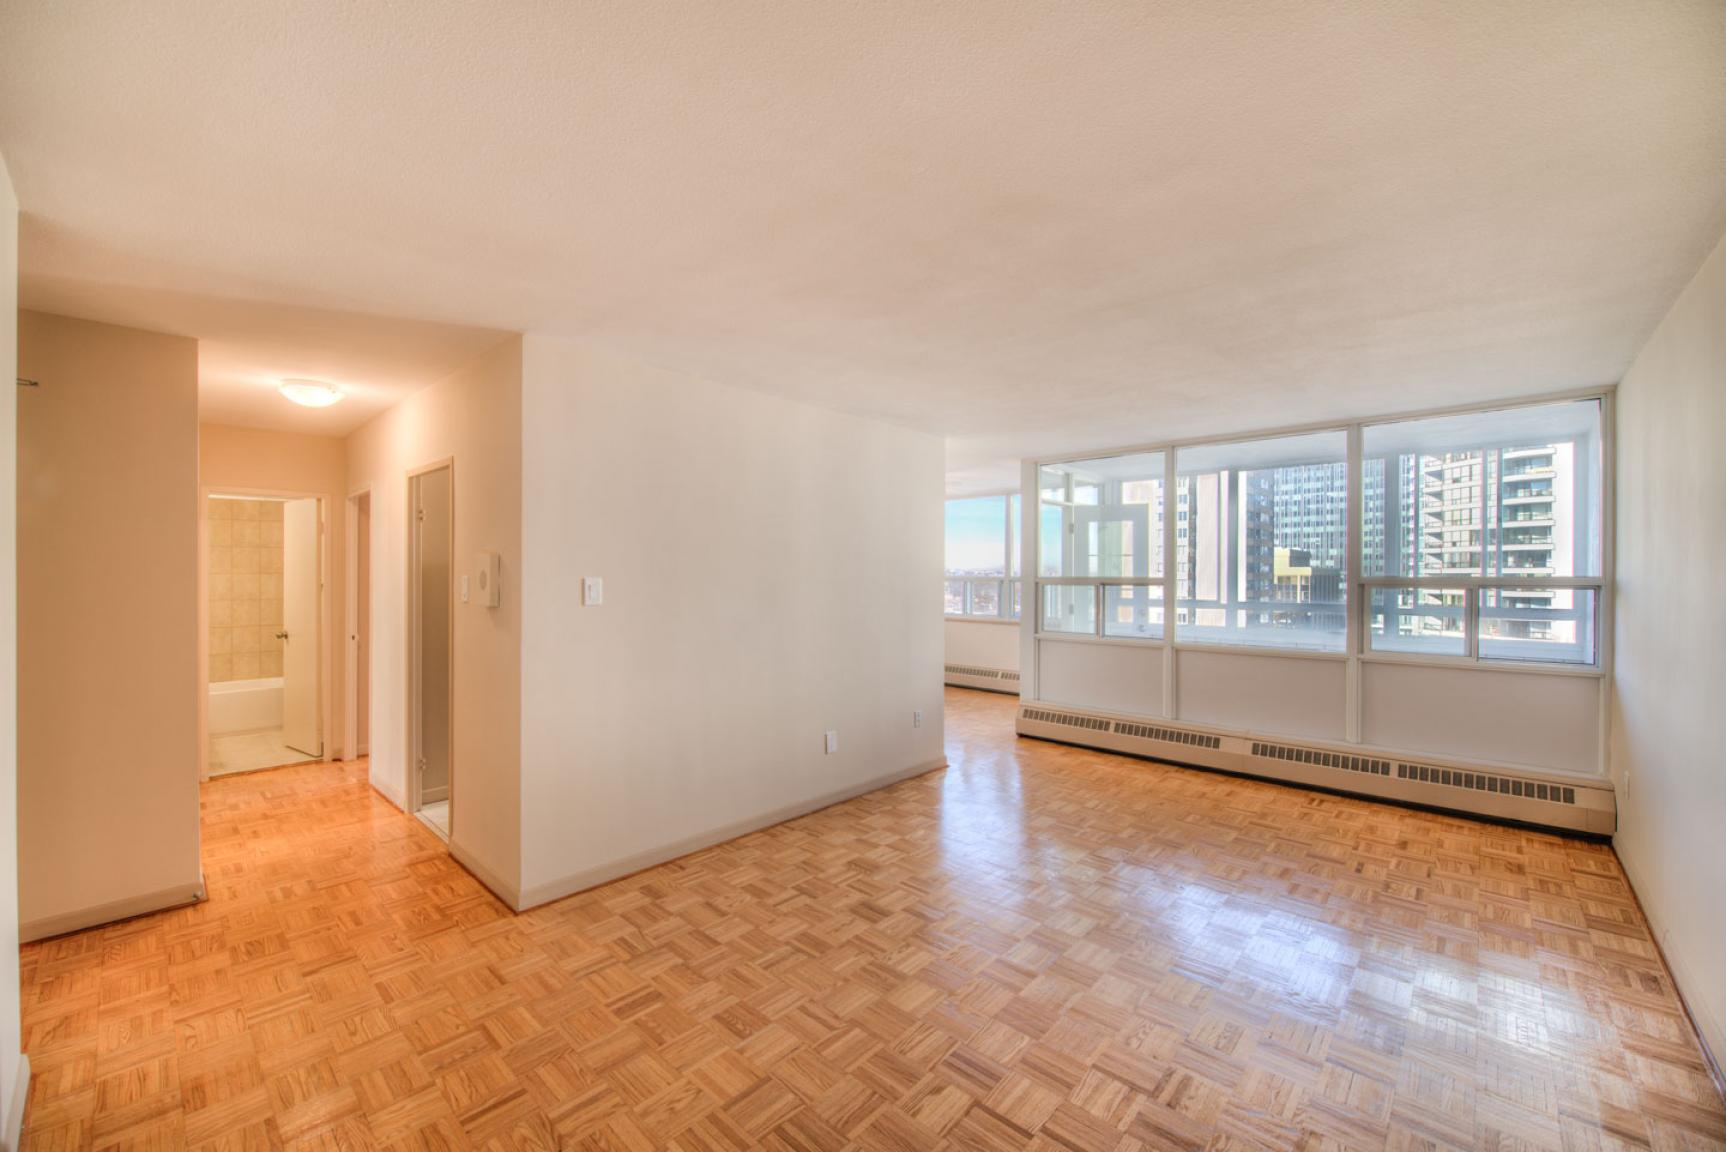 1 bedroom Apartments for rent in Toronto at Holly Tower - Photo 07 - RentersPages – L399824